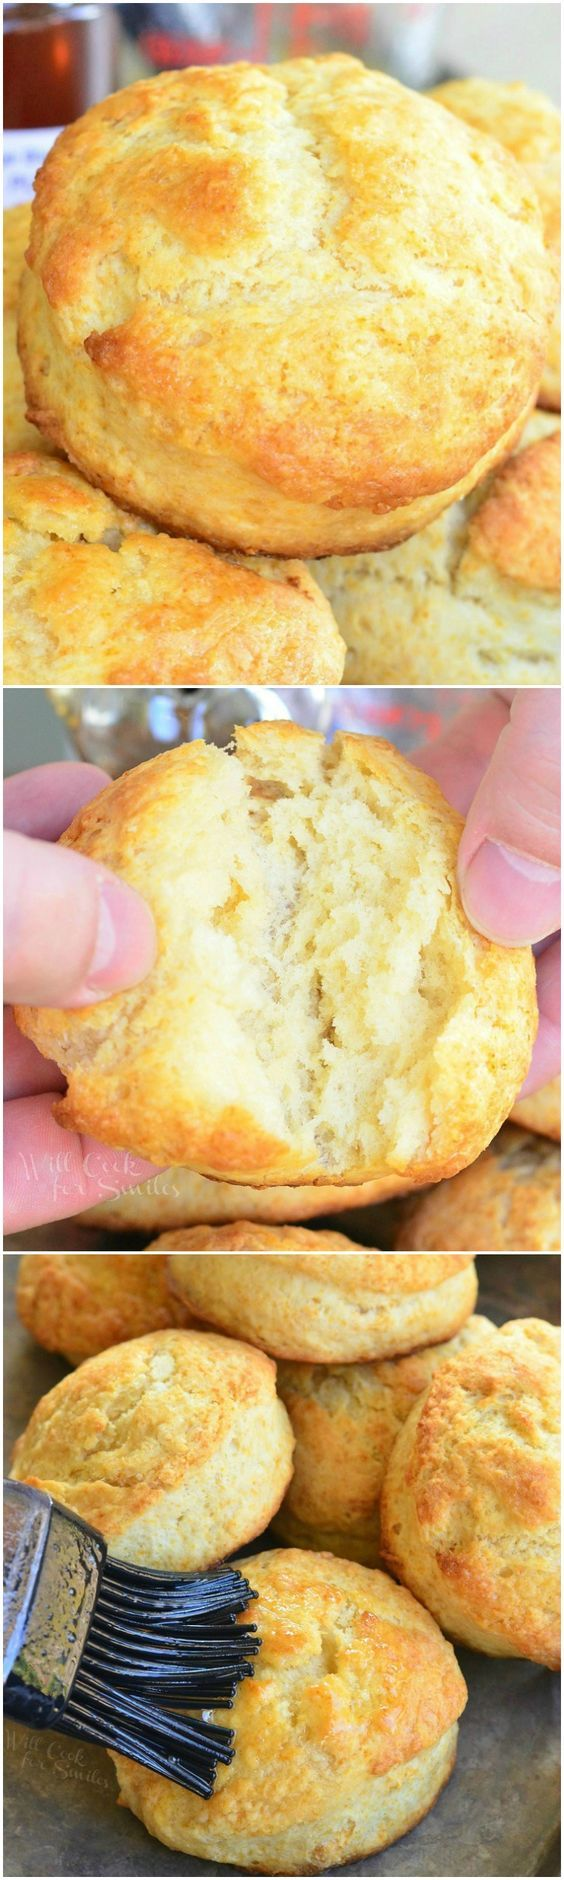 Perfect Honey Butter Biscuits! Soft fluffy biscuits made with honey for a touch of sweetness and brushed with honey butter.